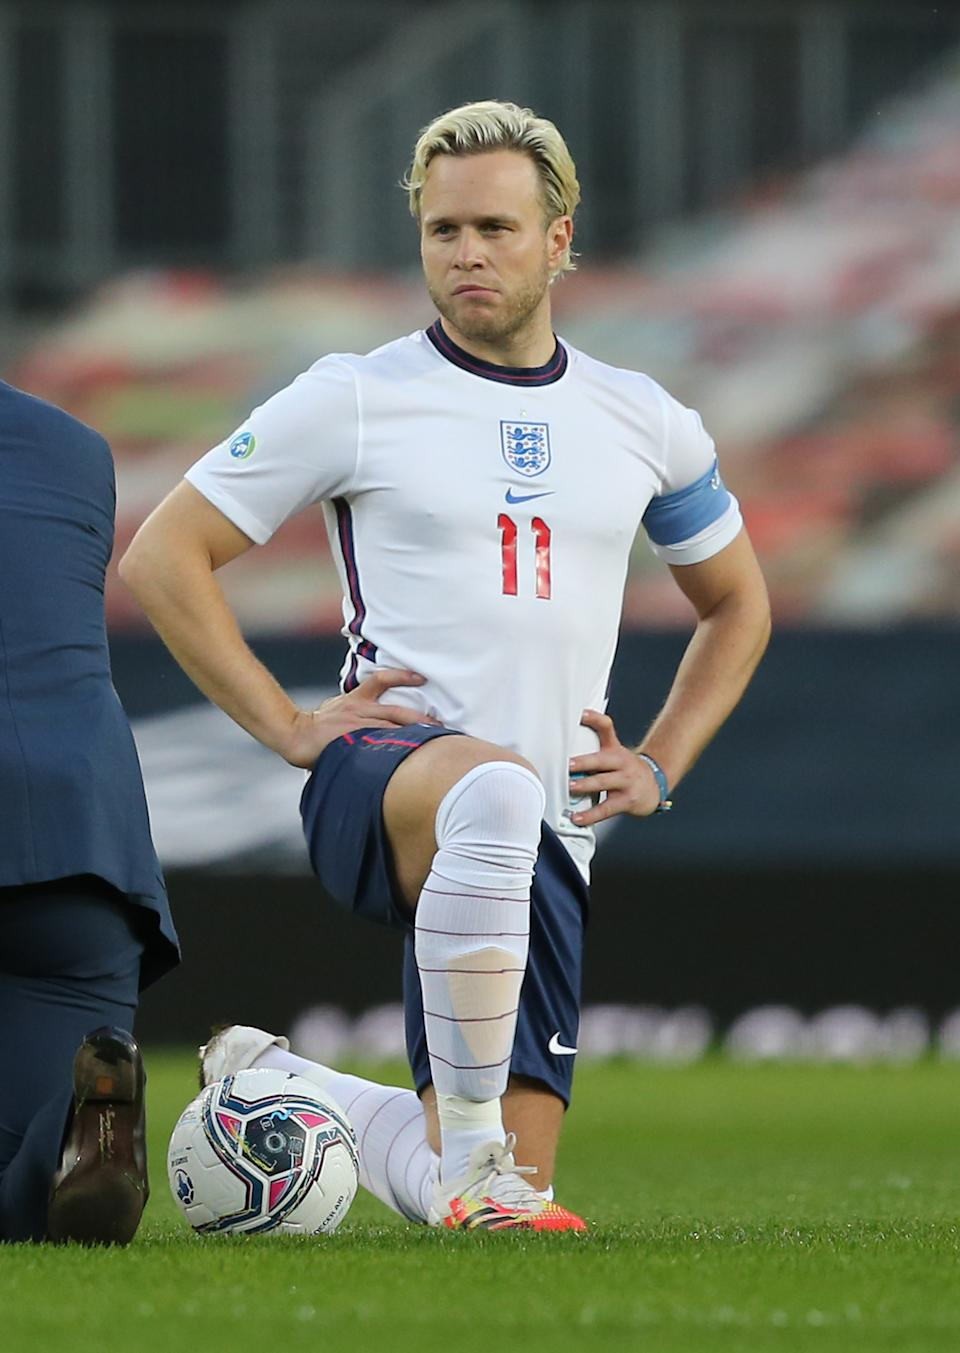 MANCHESTER, ENGLAND - SEPTEMBER 06: Olly Murs of England takes a knee in support of the Black Lives Matter campaign ahead of the Soccer Aid for Unicef 2020 match between England and Rest of the World at Old Trafford on September 06, 2020 in Manchester, England. (Photo by John Peters/Manchester United via Getty Images)